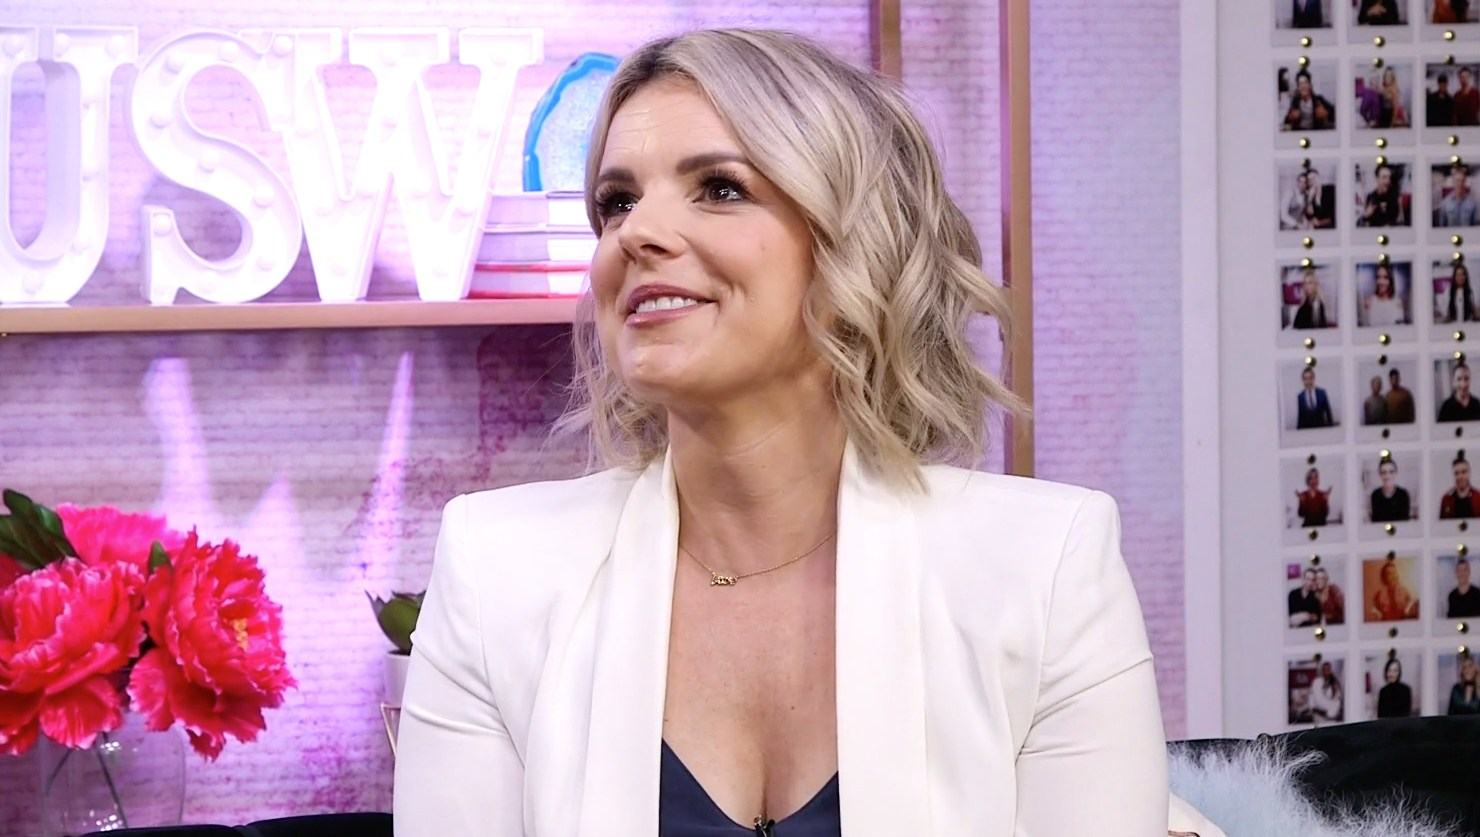 Ali Fedotowsky Wants a 'Big Family' and Is Considering Adoption for Baby No. 3